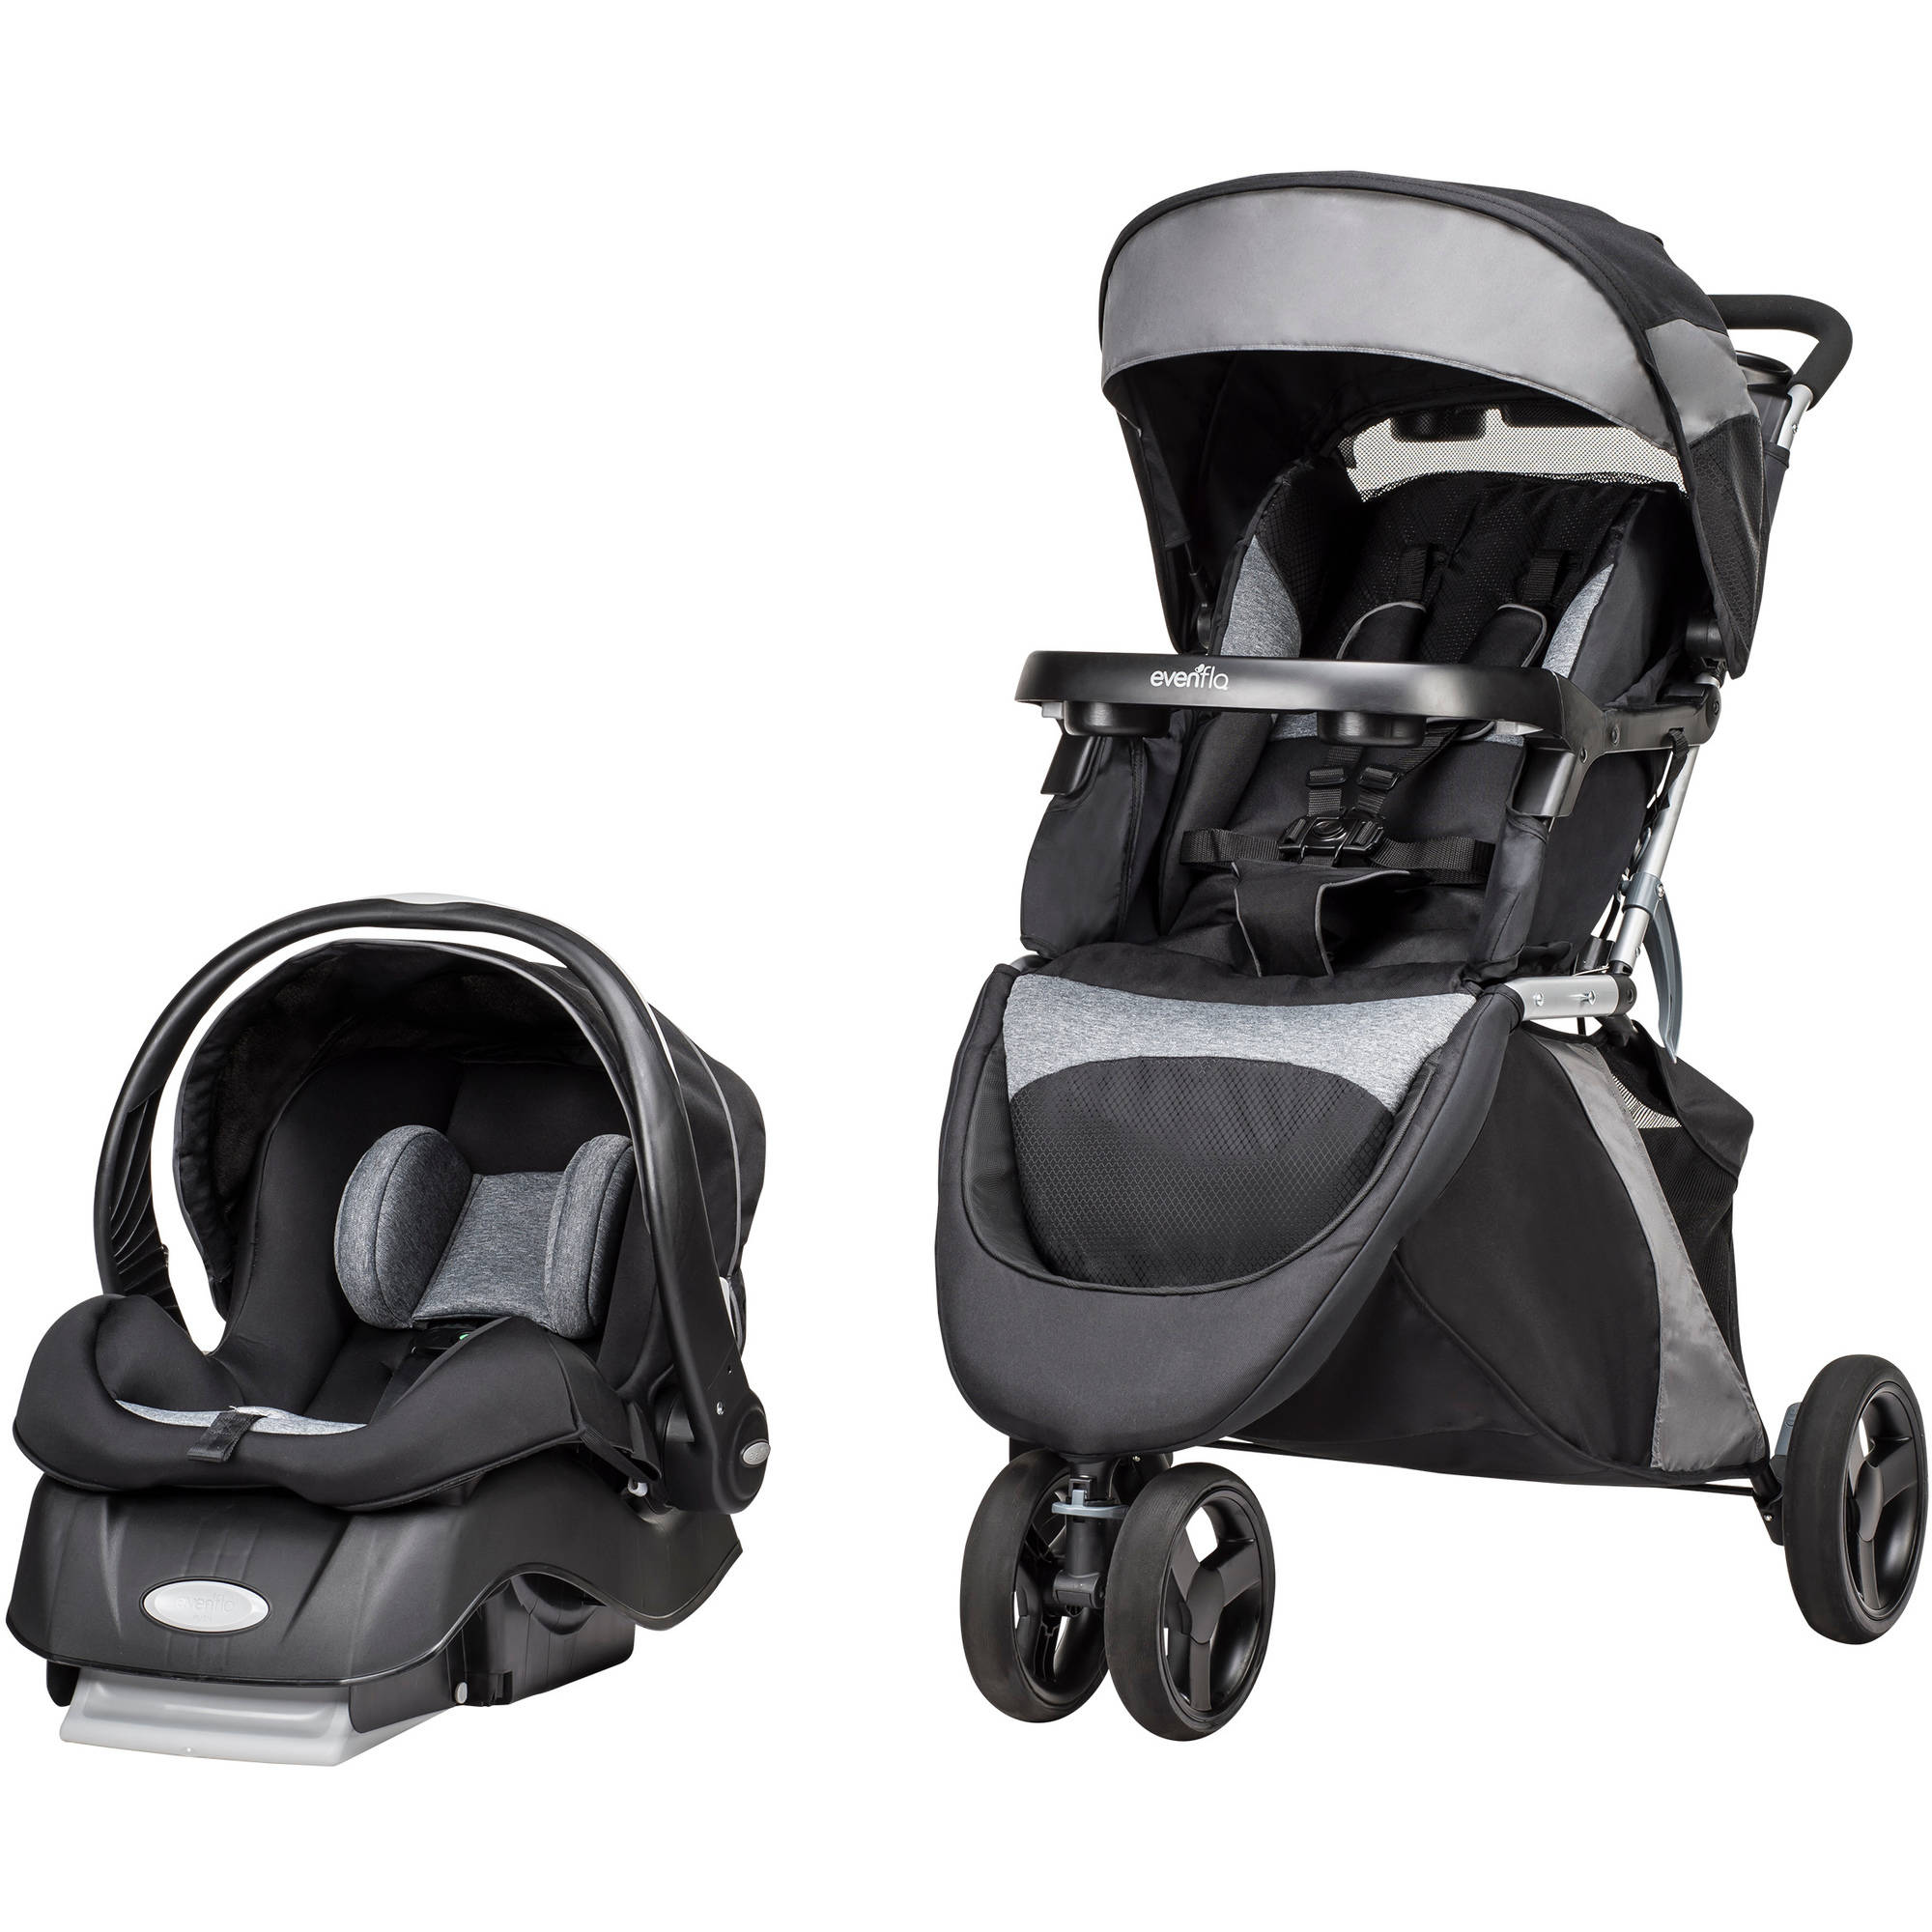 Evenflo Advanced SensorSafe Epic 3 in 1 Travel System